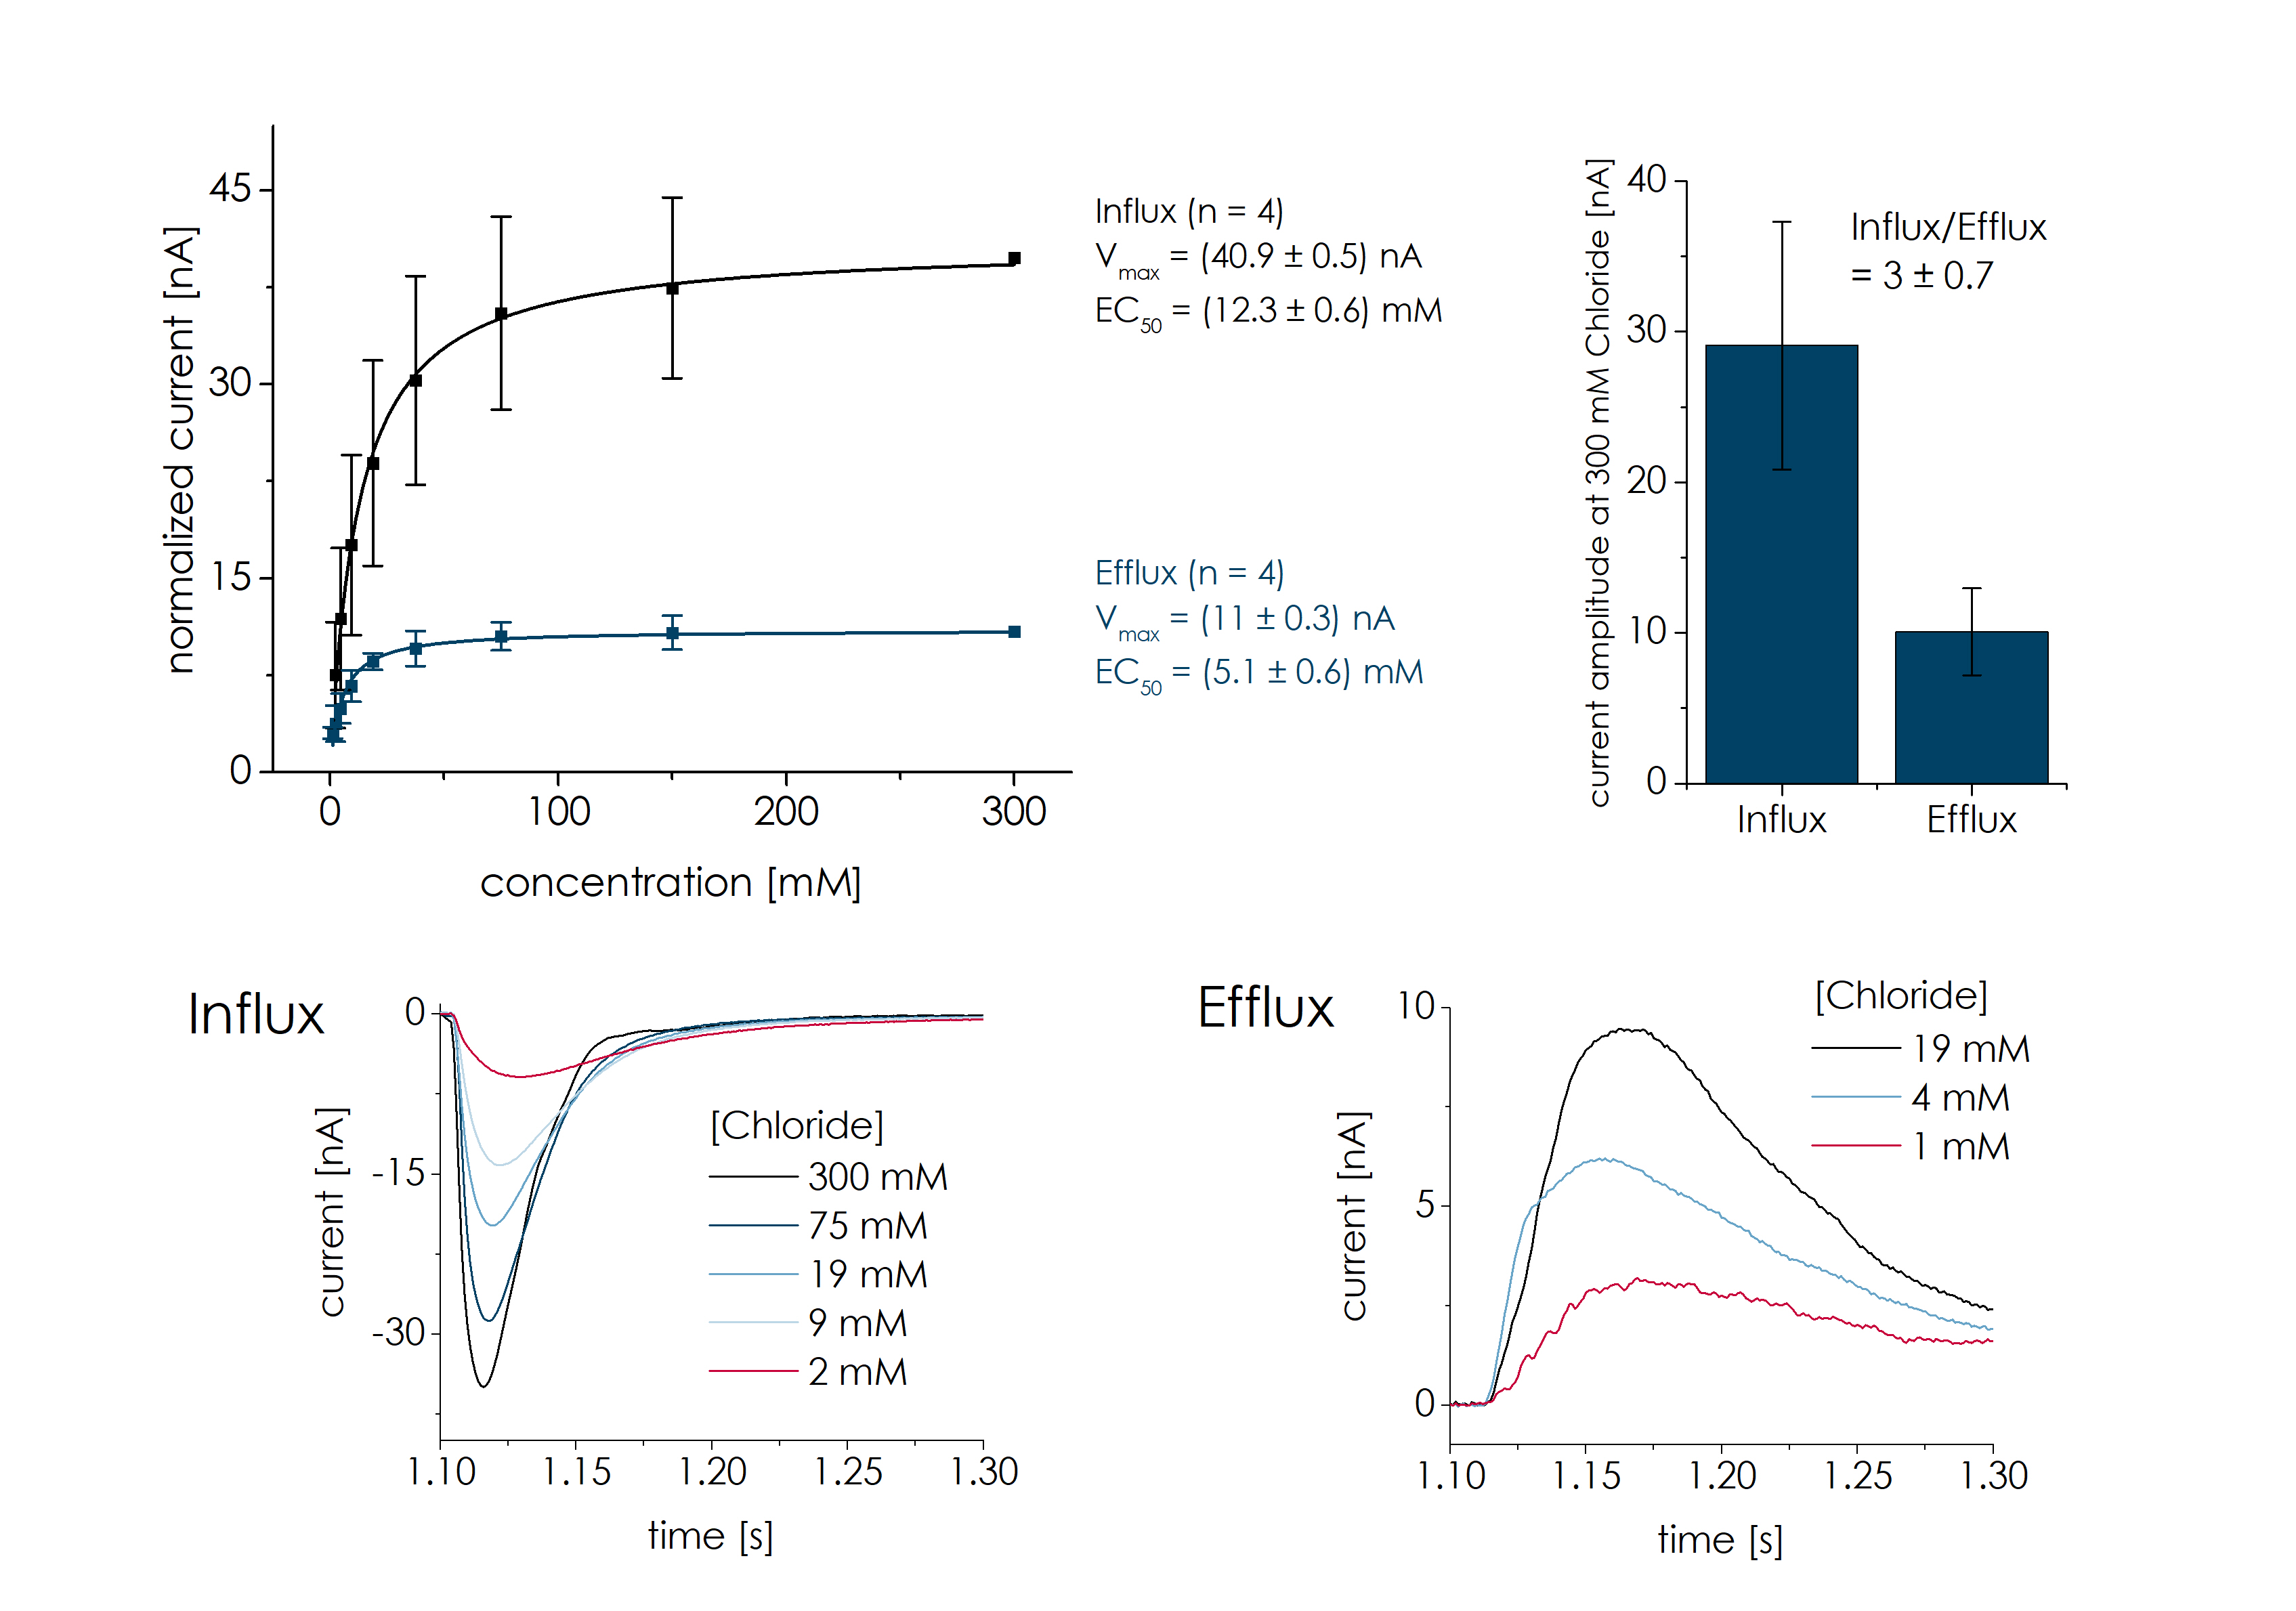 Clc Figure 2   EC50 Efflux vs Influx